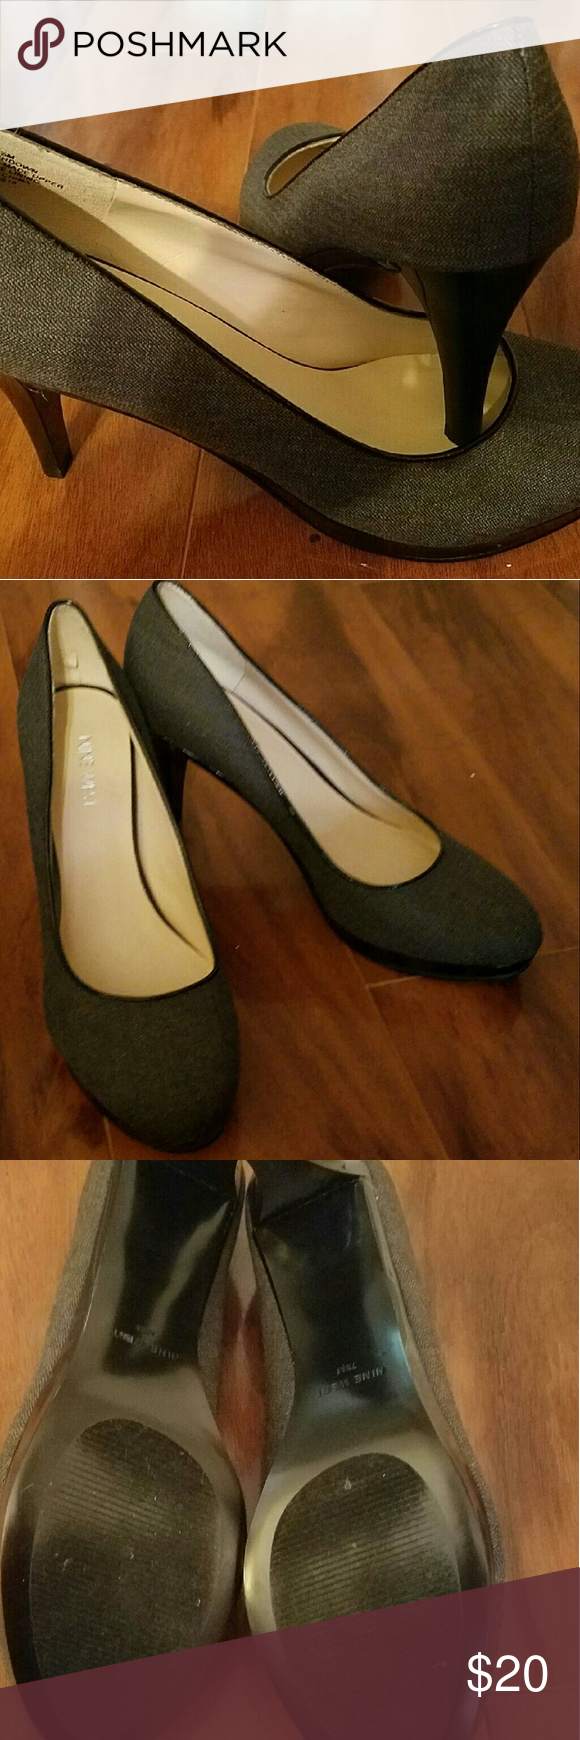 Nine West gray heels Nearly New!! Only worn twice! 3 inch heels.   Make a bundle,  make an offer...everything is negotiable!  Happy Poshing!! Nine West Shoes Heels